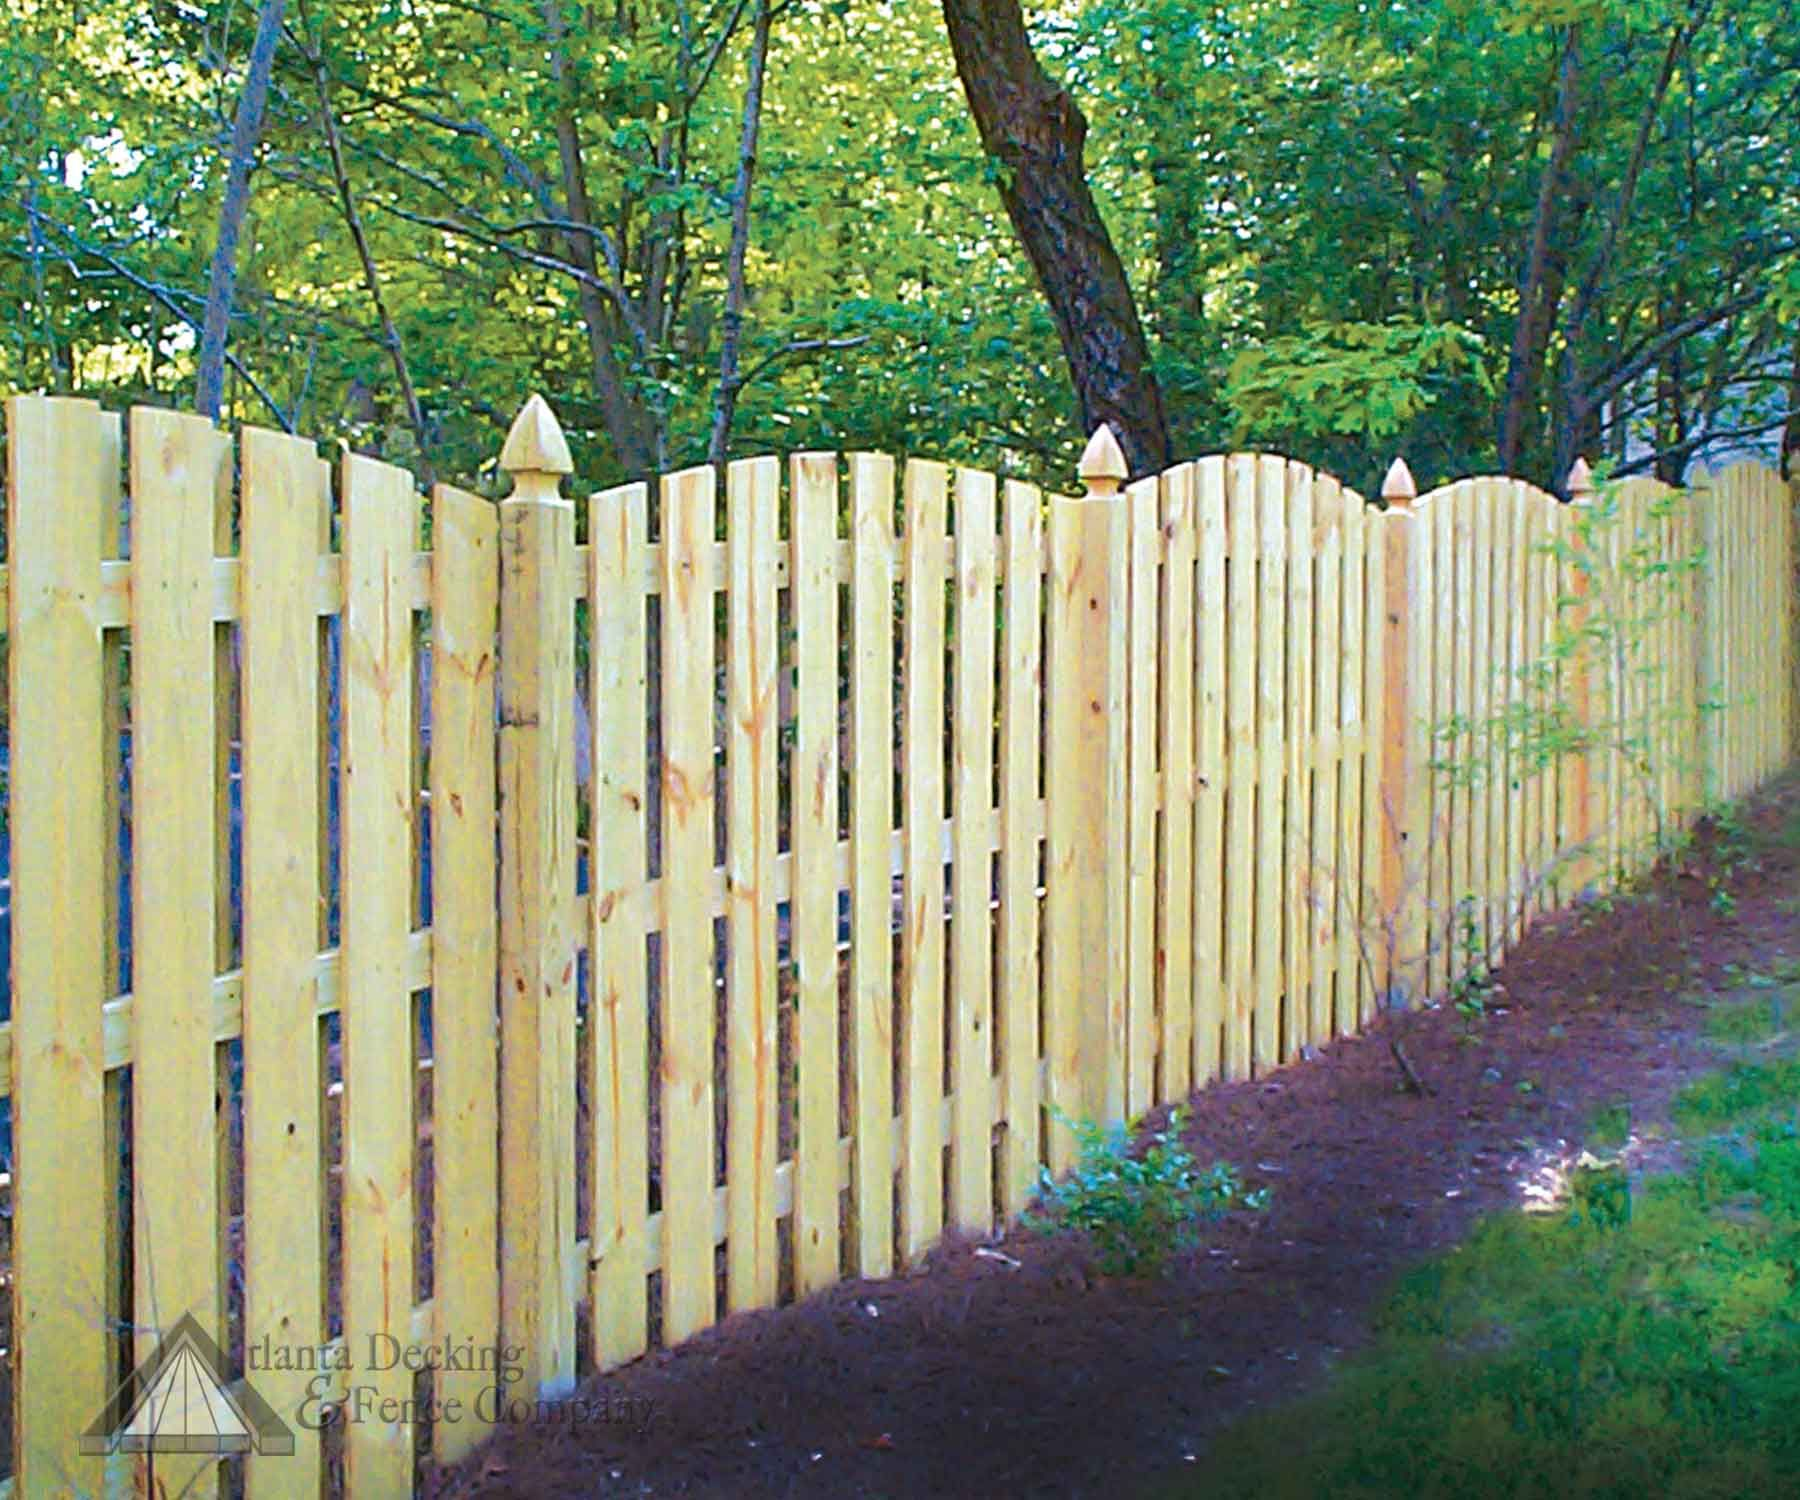 Positive Arch Shadow Box Fence With French Gothic Posts From Atlanta Decking And Fence Company Fence Design Shadow Box Fence Garden Yard Ideas